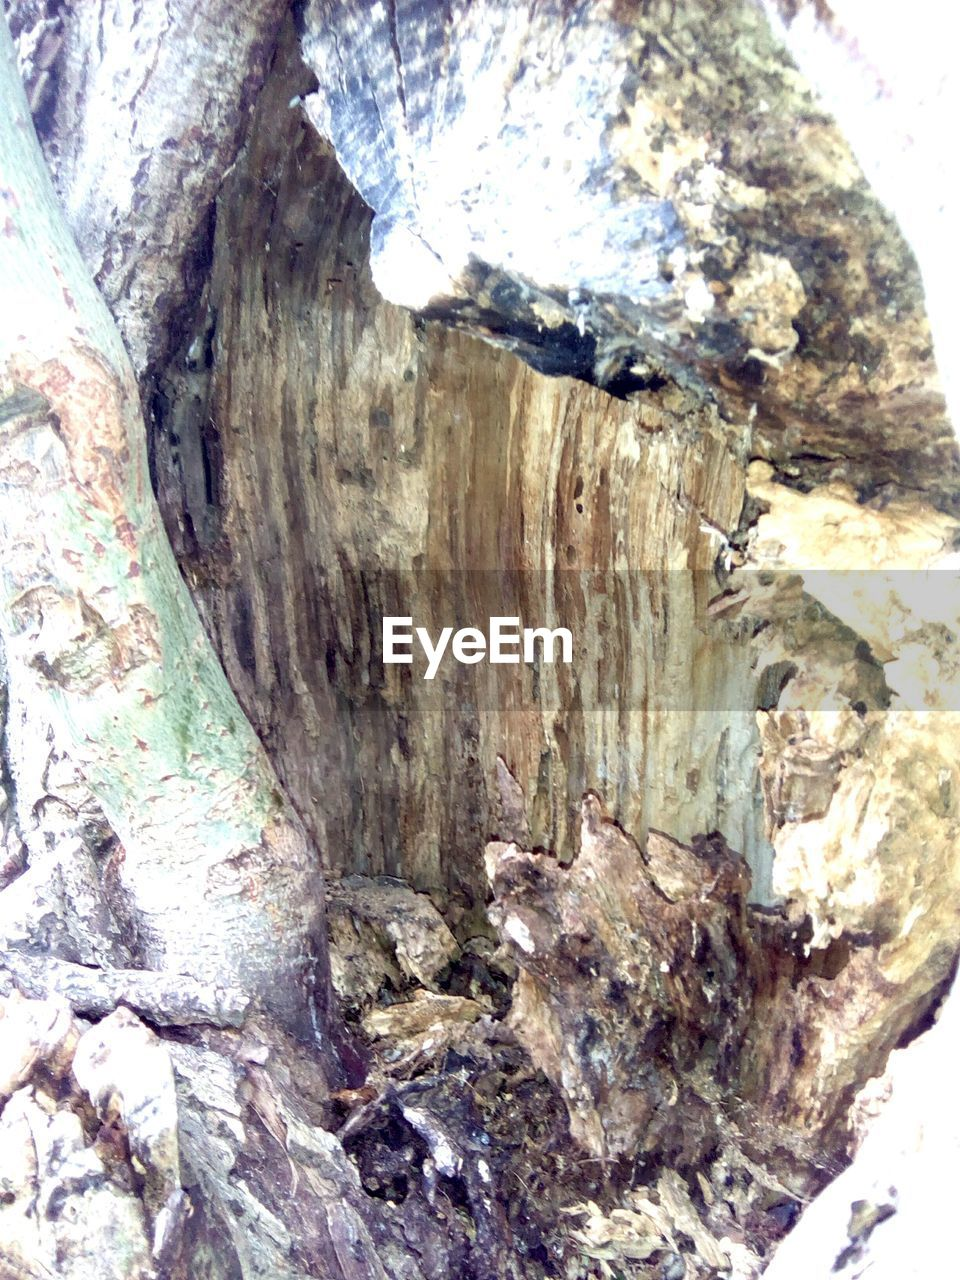 tree, textured, trunk, tree trunk, close-up, wood - material, no people, rough, day, nature, bark, outdoors, pattern, plant, natural pattern, backgrounds, full frame, wood, sunlight, plant bark